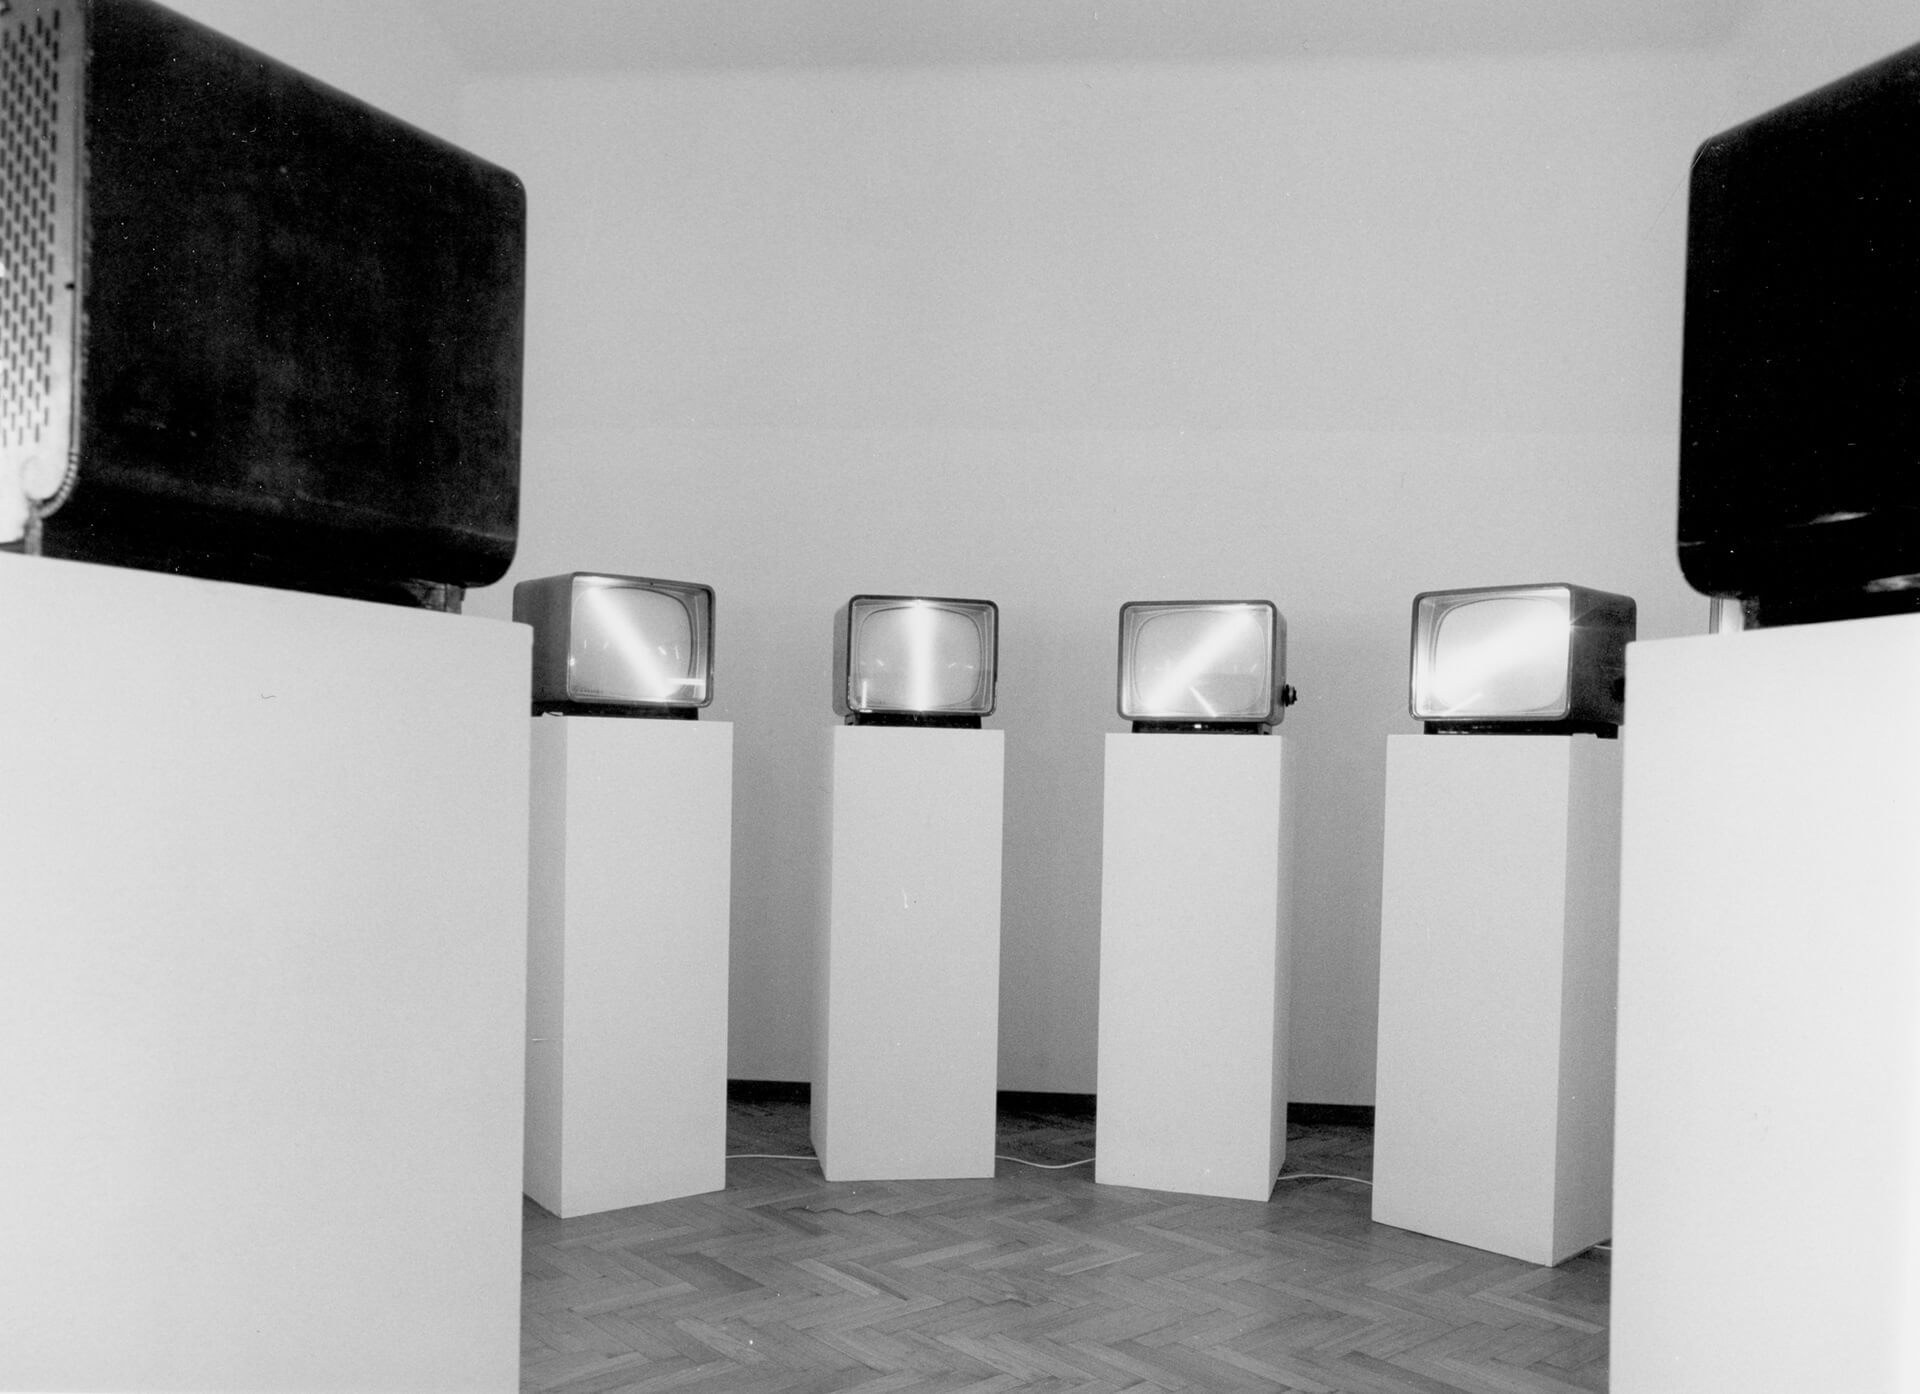 Nam June Paik frequently used television monitors as a material in his installations | The Future Is Now by Nam June Paik | STIRworld